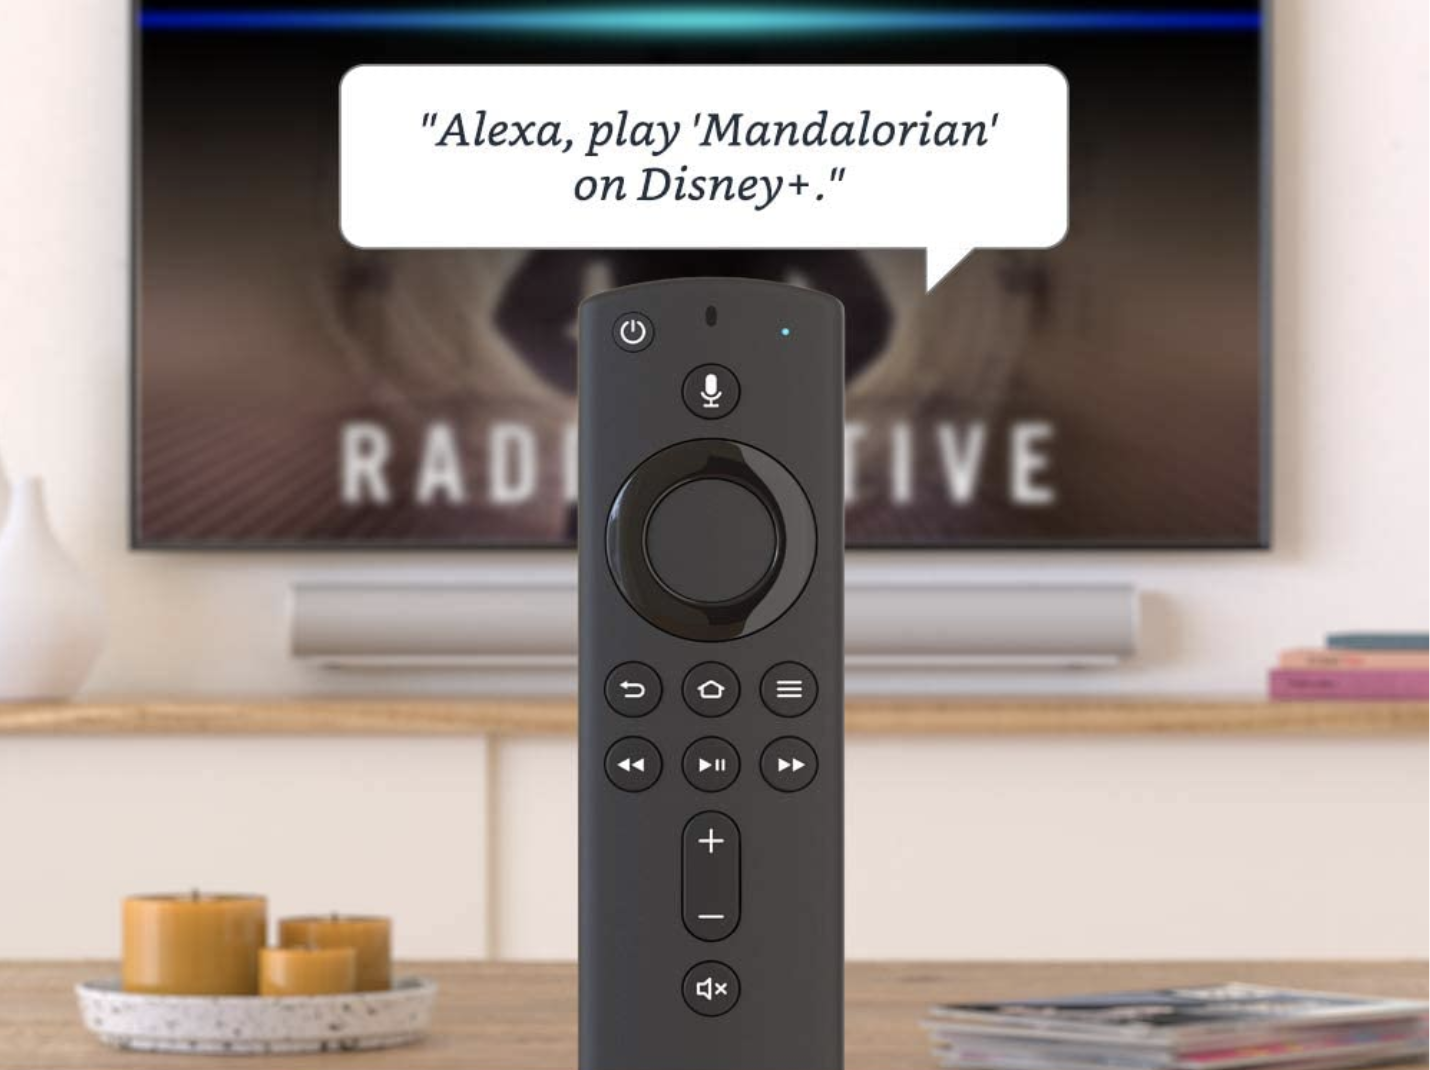 A slim black remote control with small buttons, including one that you can talk into